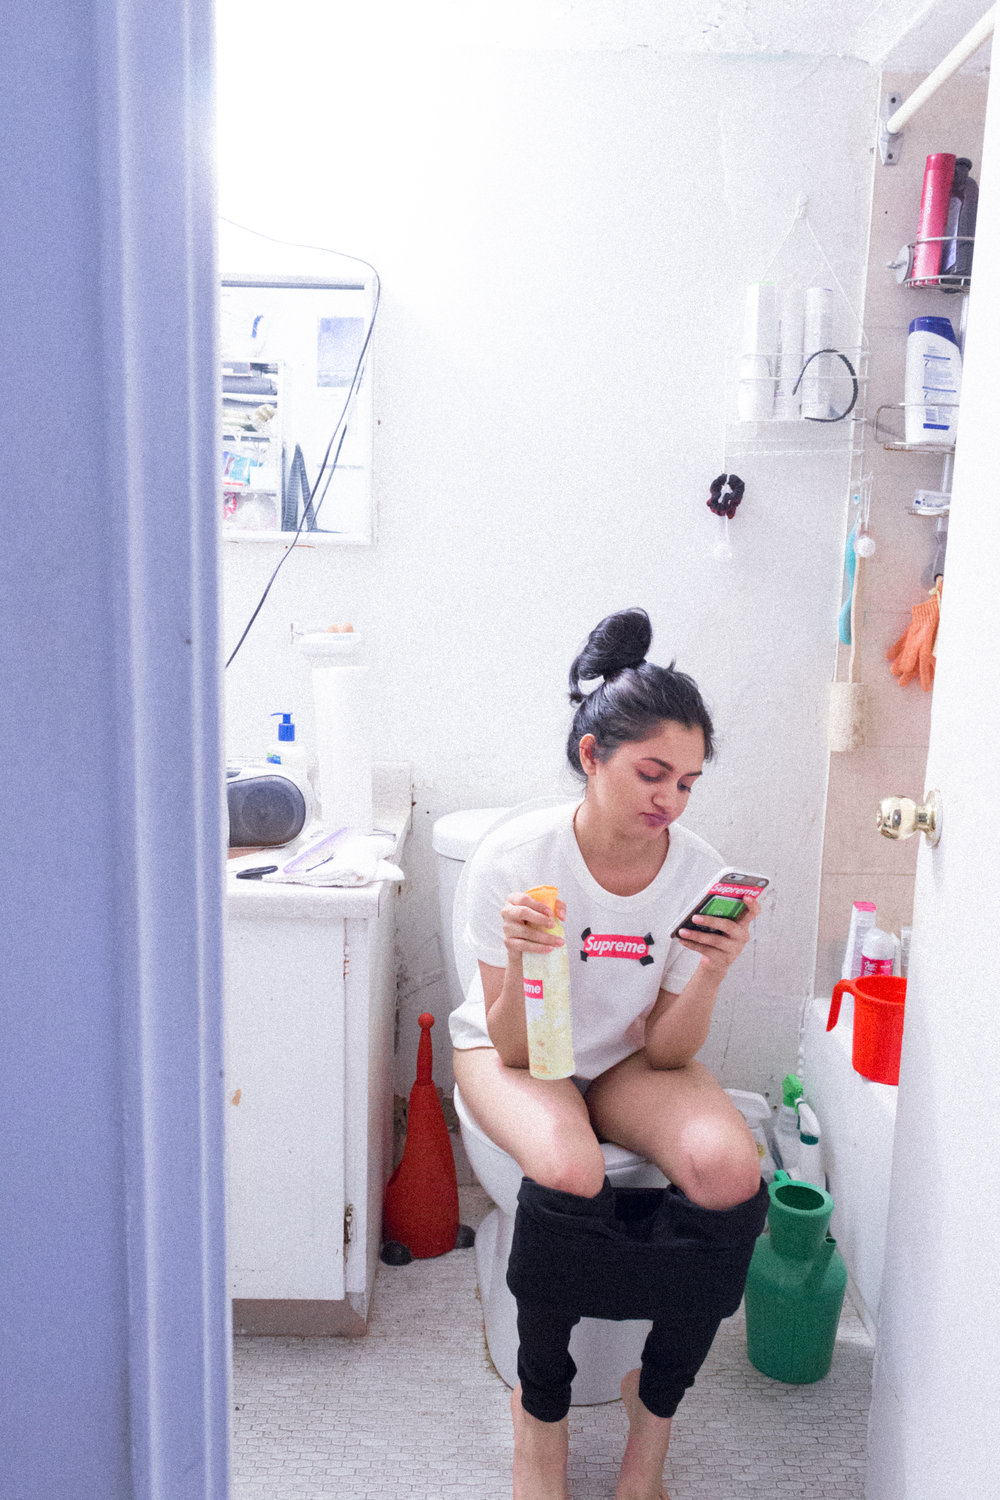 Me in my Supreme shirt, sitting on my Supreme toilet, taking a Supreme shit.